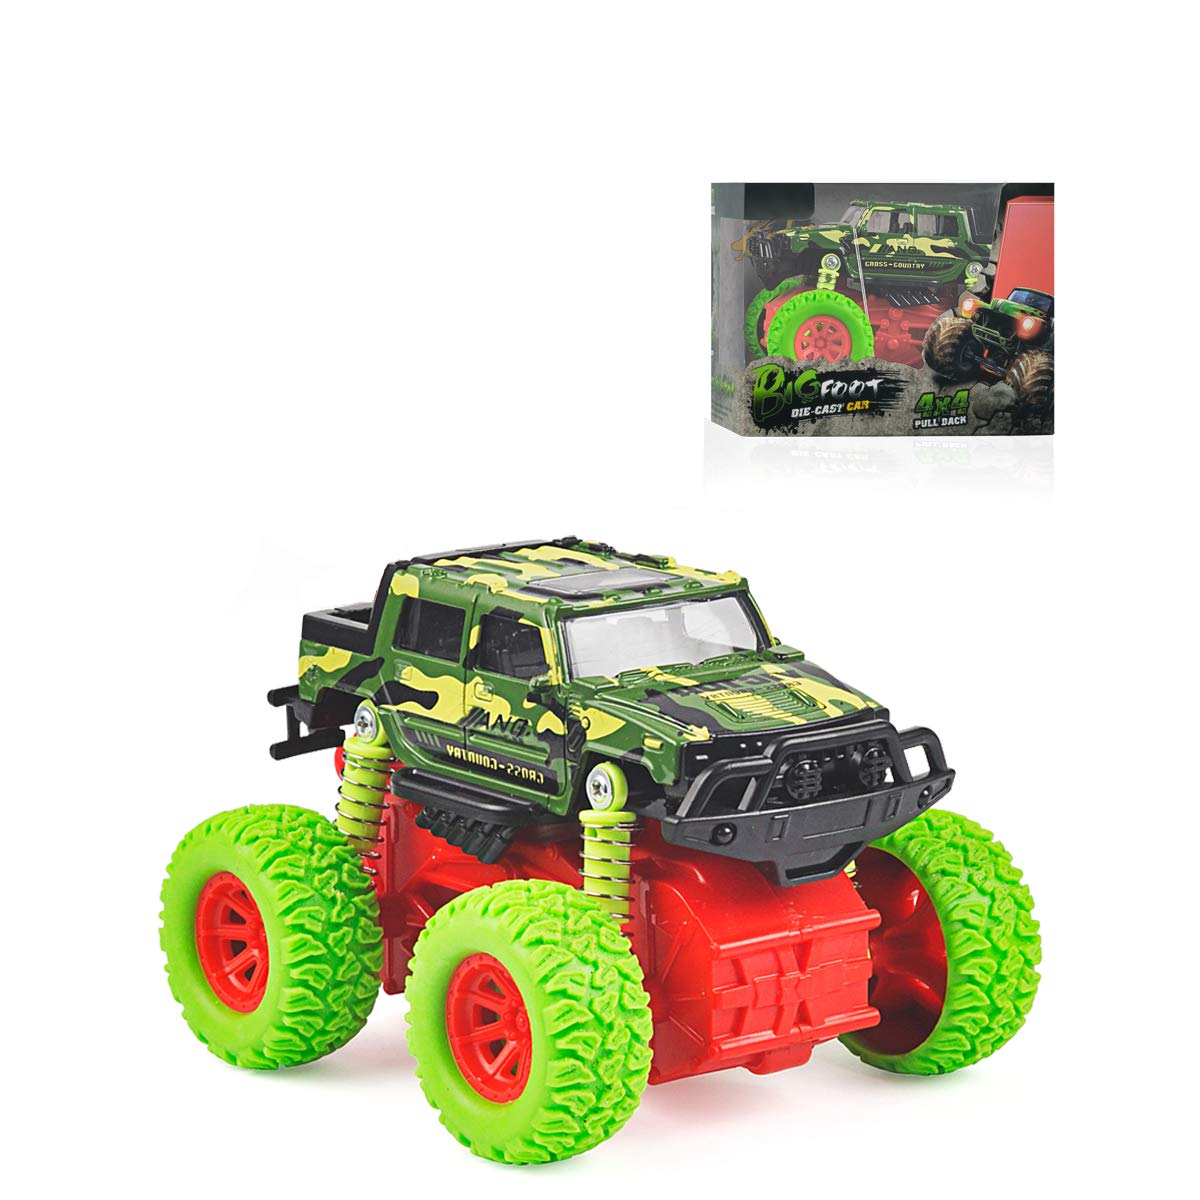 Baby Car Toy Off-Road Inertial Vehicle Four-Wheel Drive Push and Go Simulation Alloy Military Car Toys for 3 Year Old Boy Kids Children Toddler Play Games Best Gift Green ZhaoLeTai Plastic Toy Factory